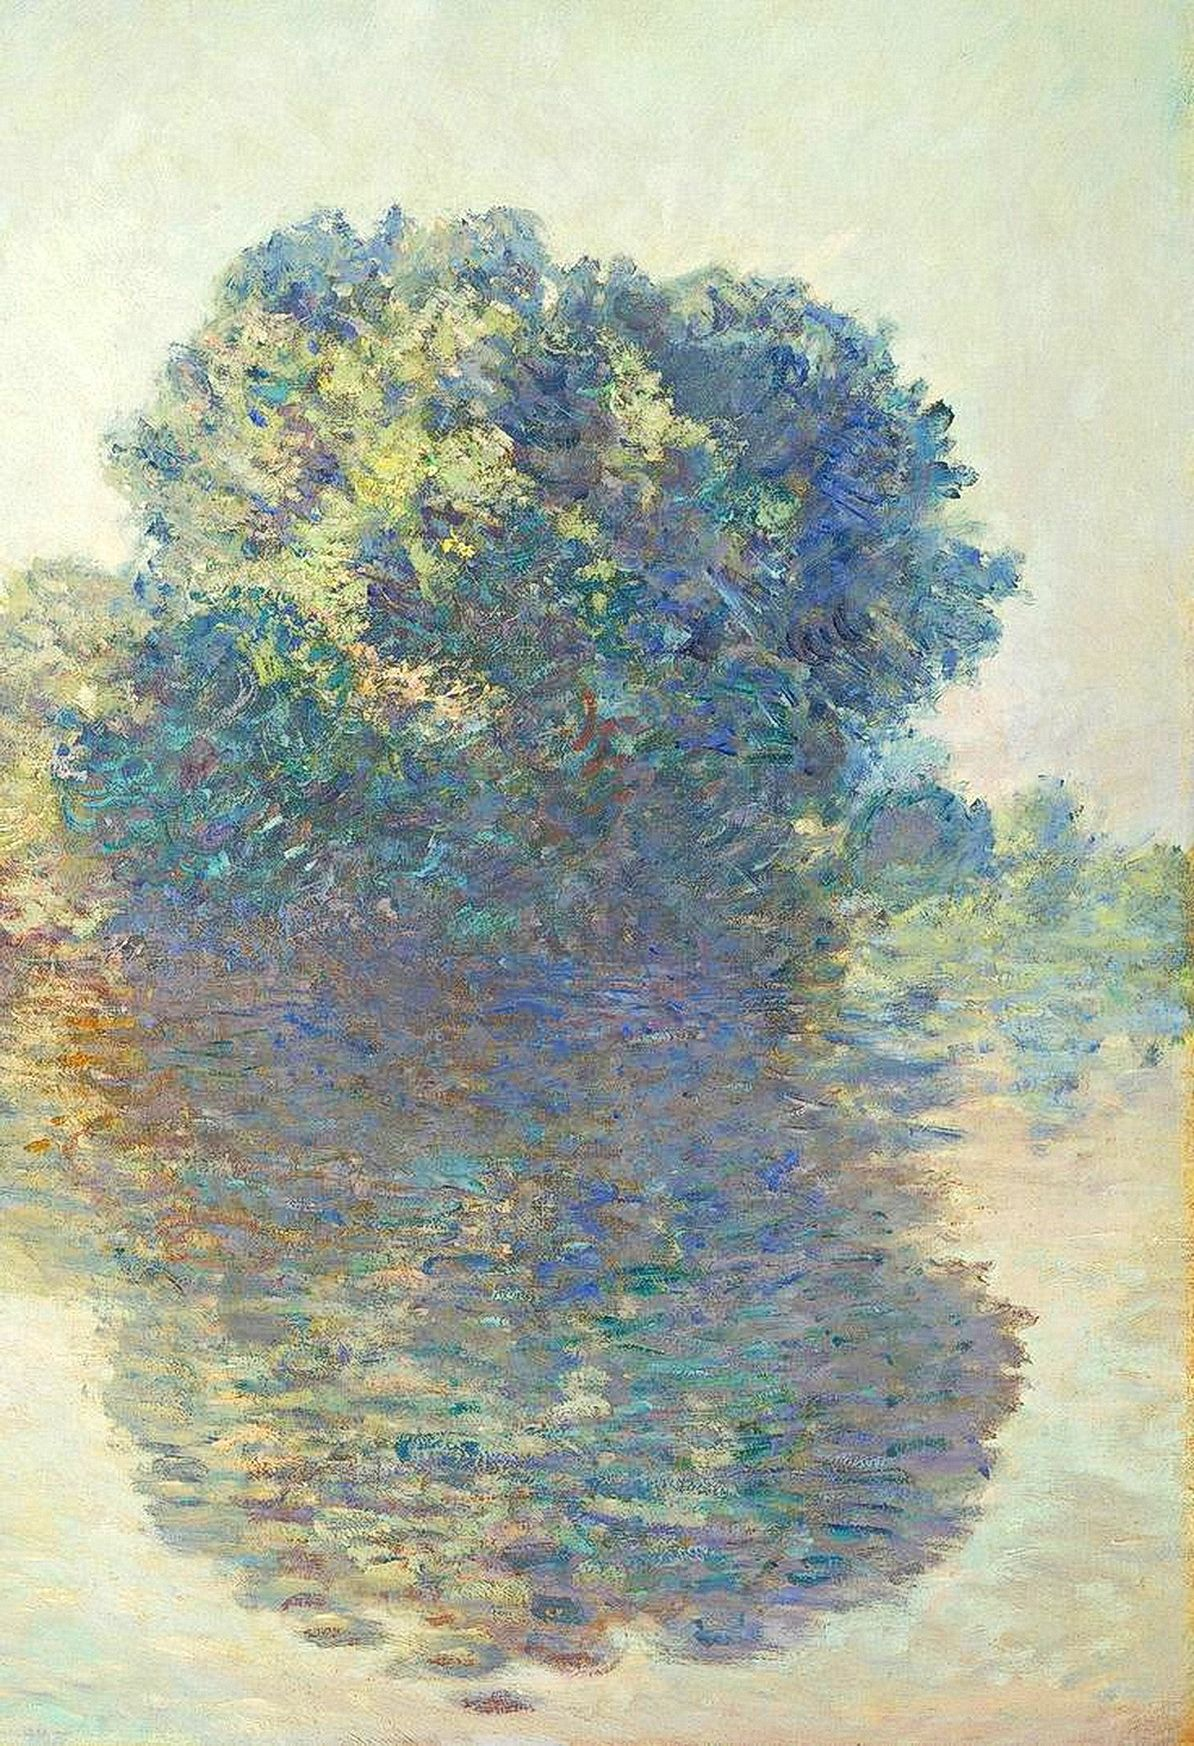 Claude Monet - The Seine at Giverny, 1897